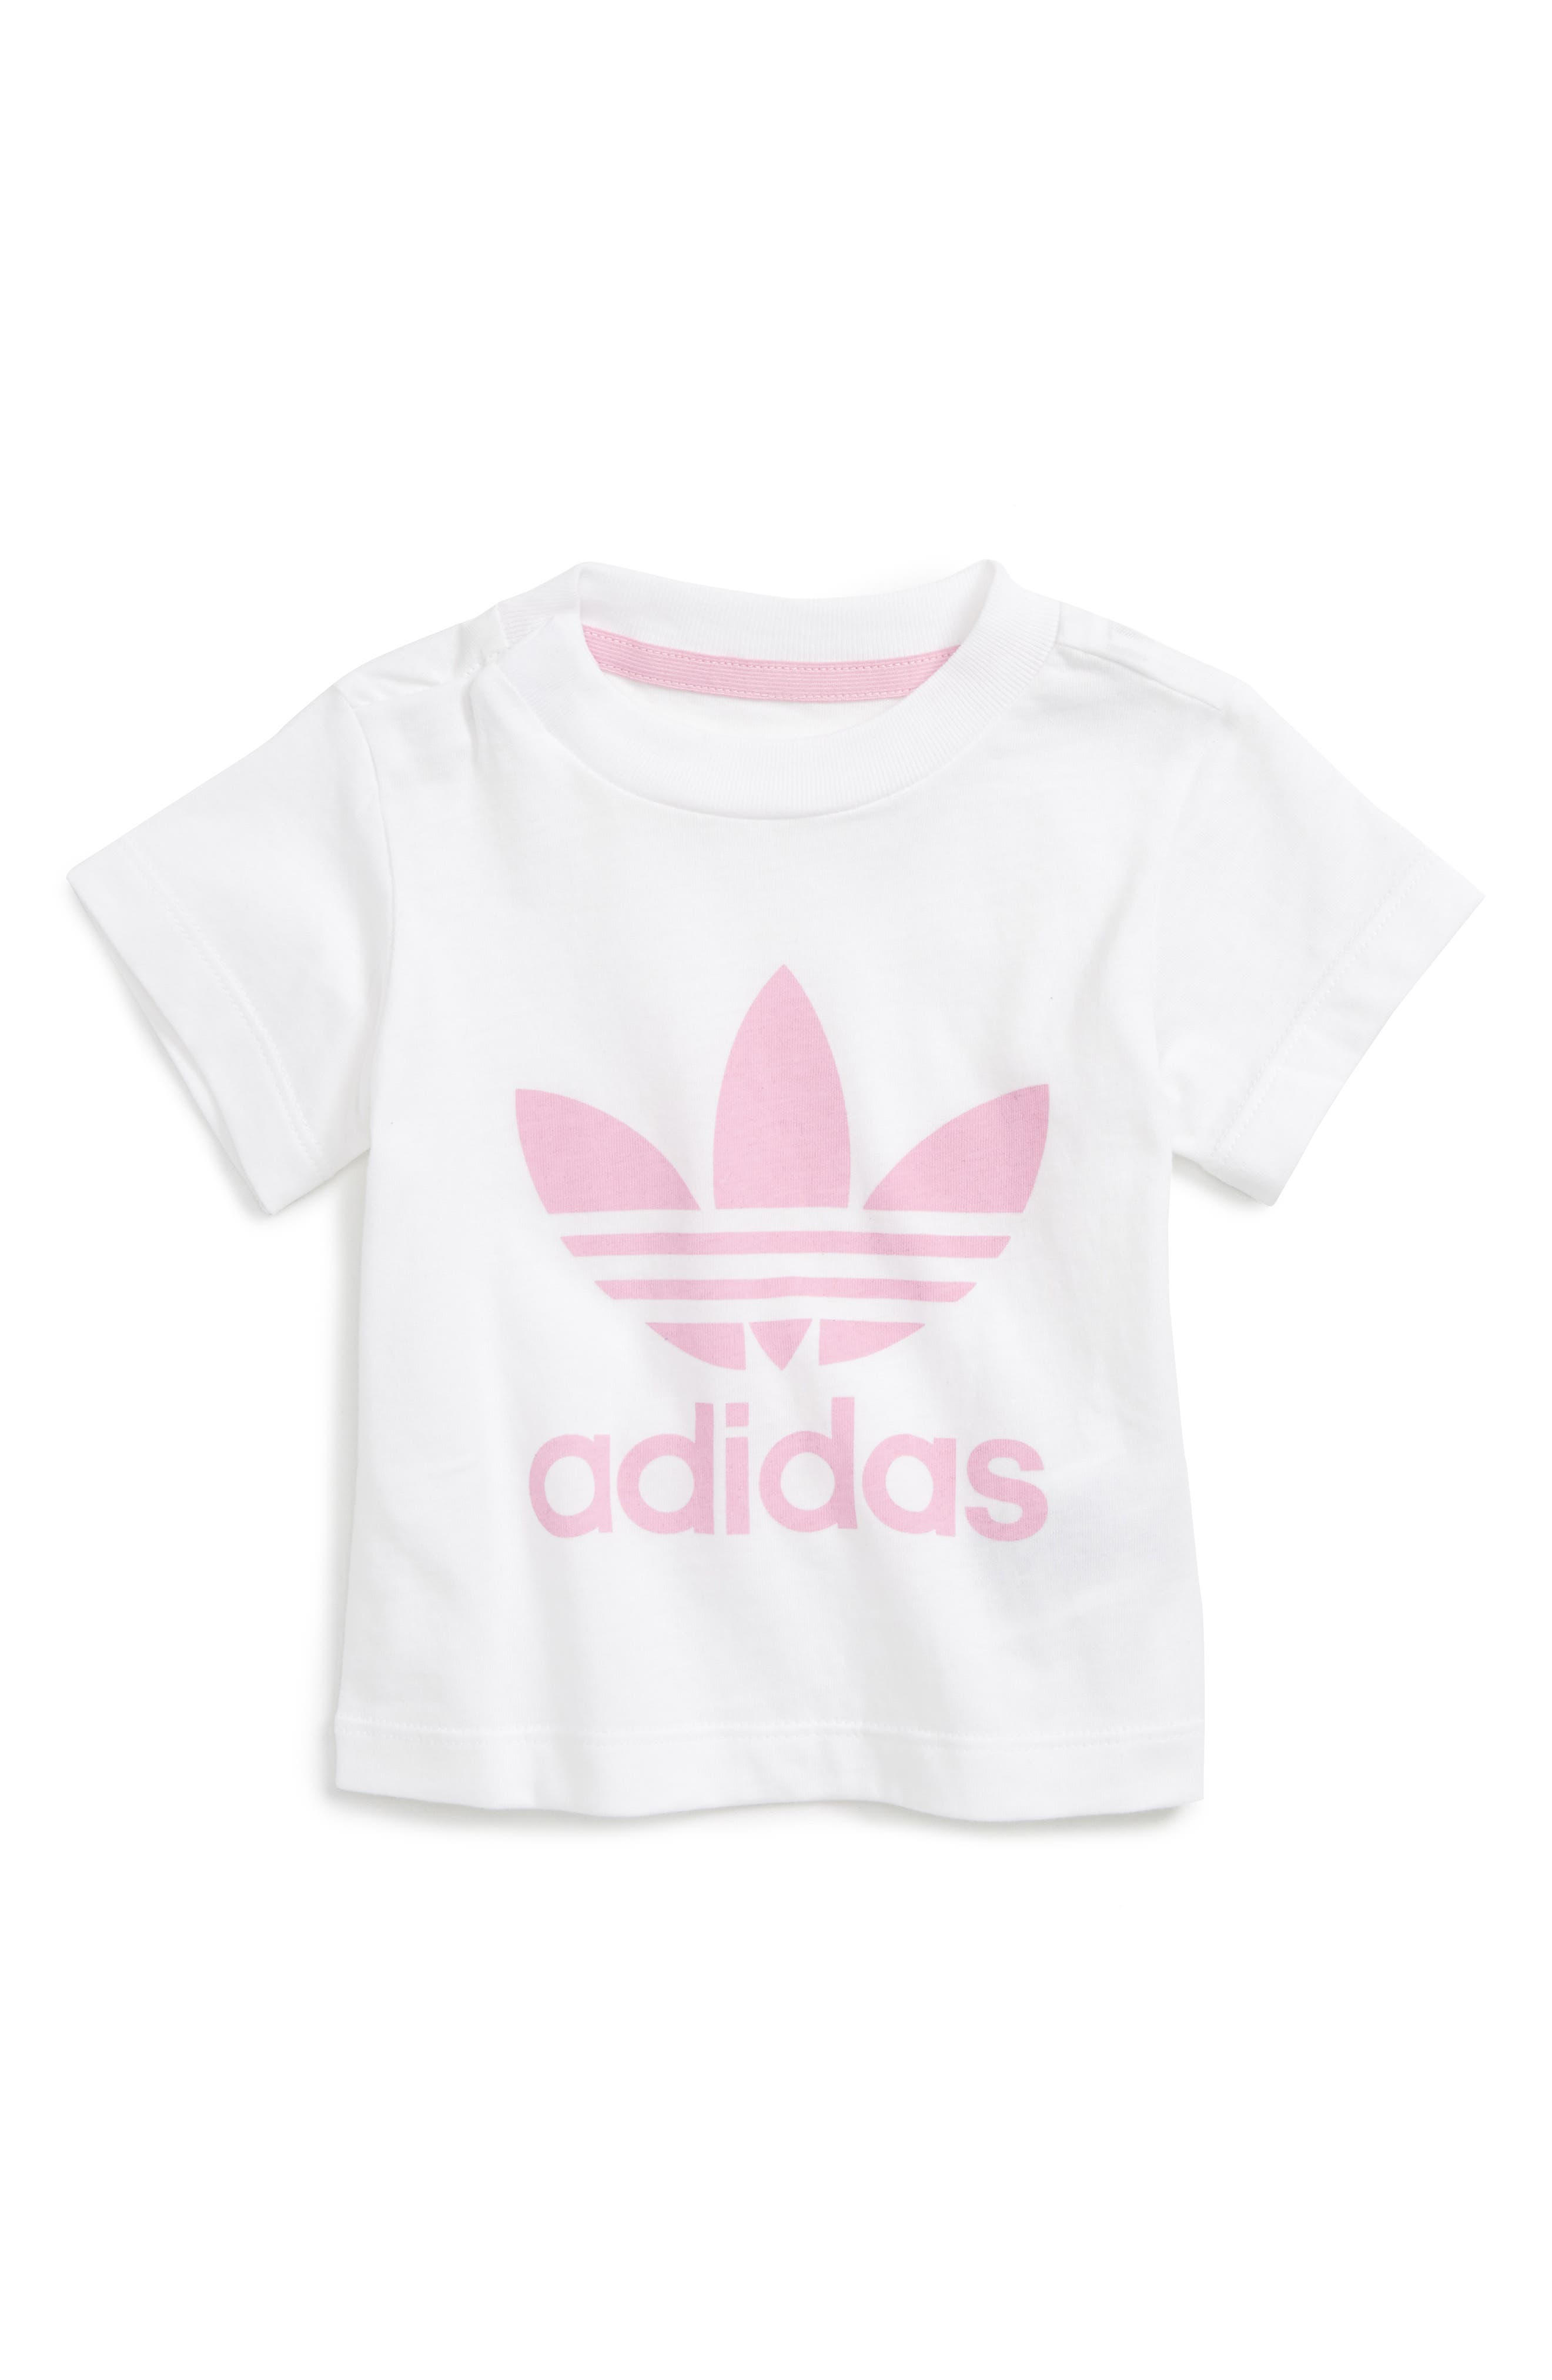 adidas Originals Trefoil Graphic Tee (Baby Girls)